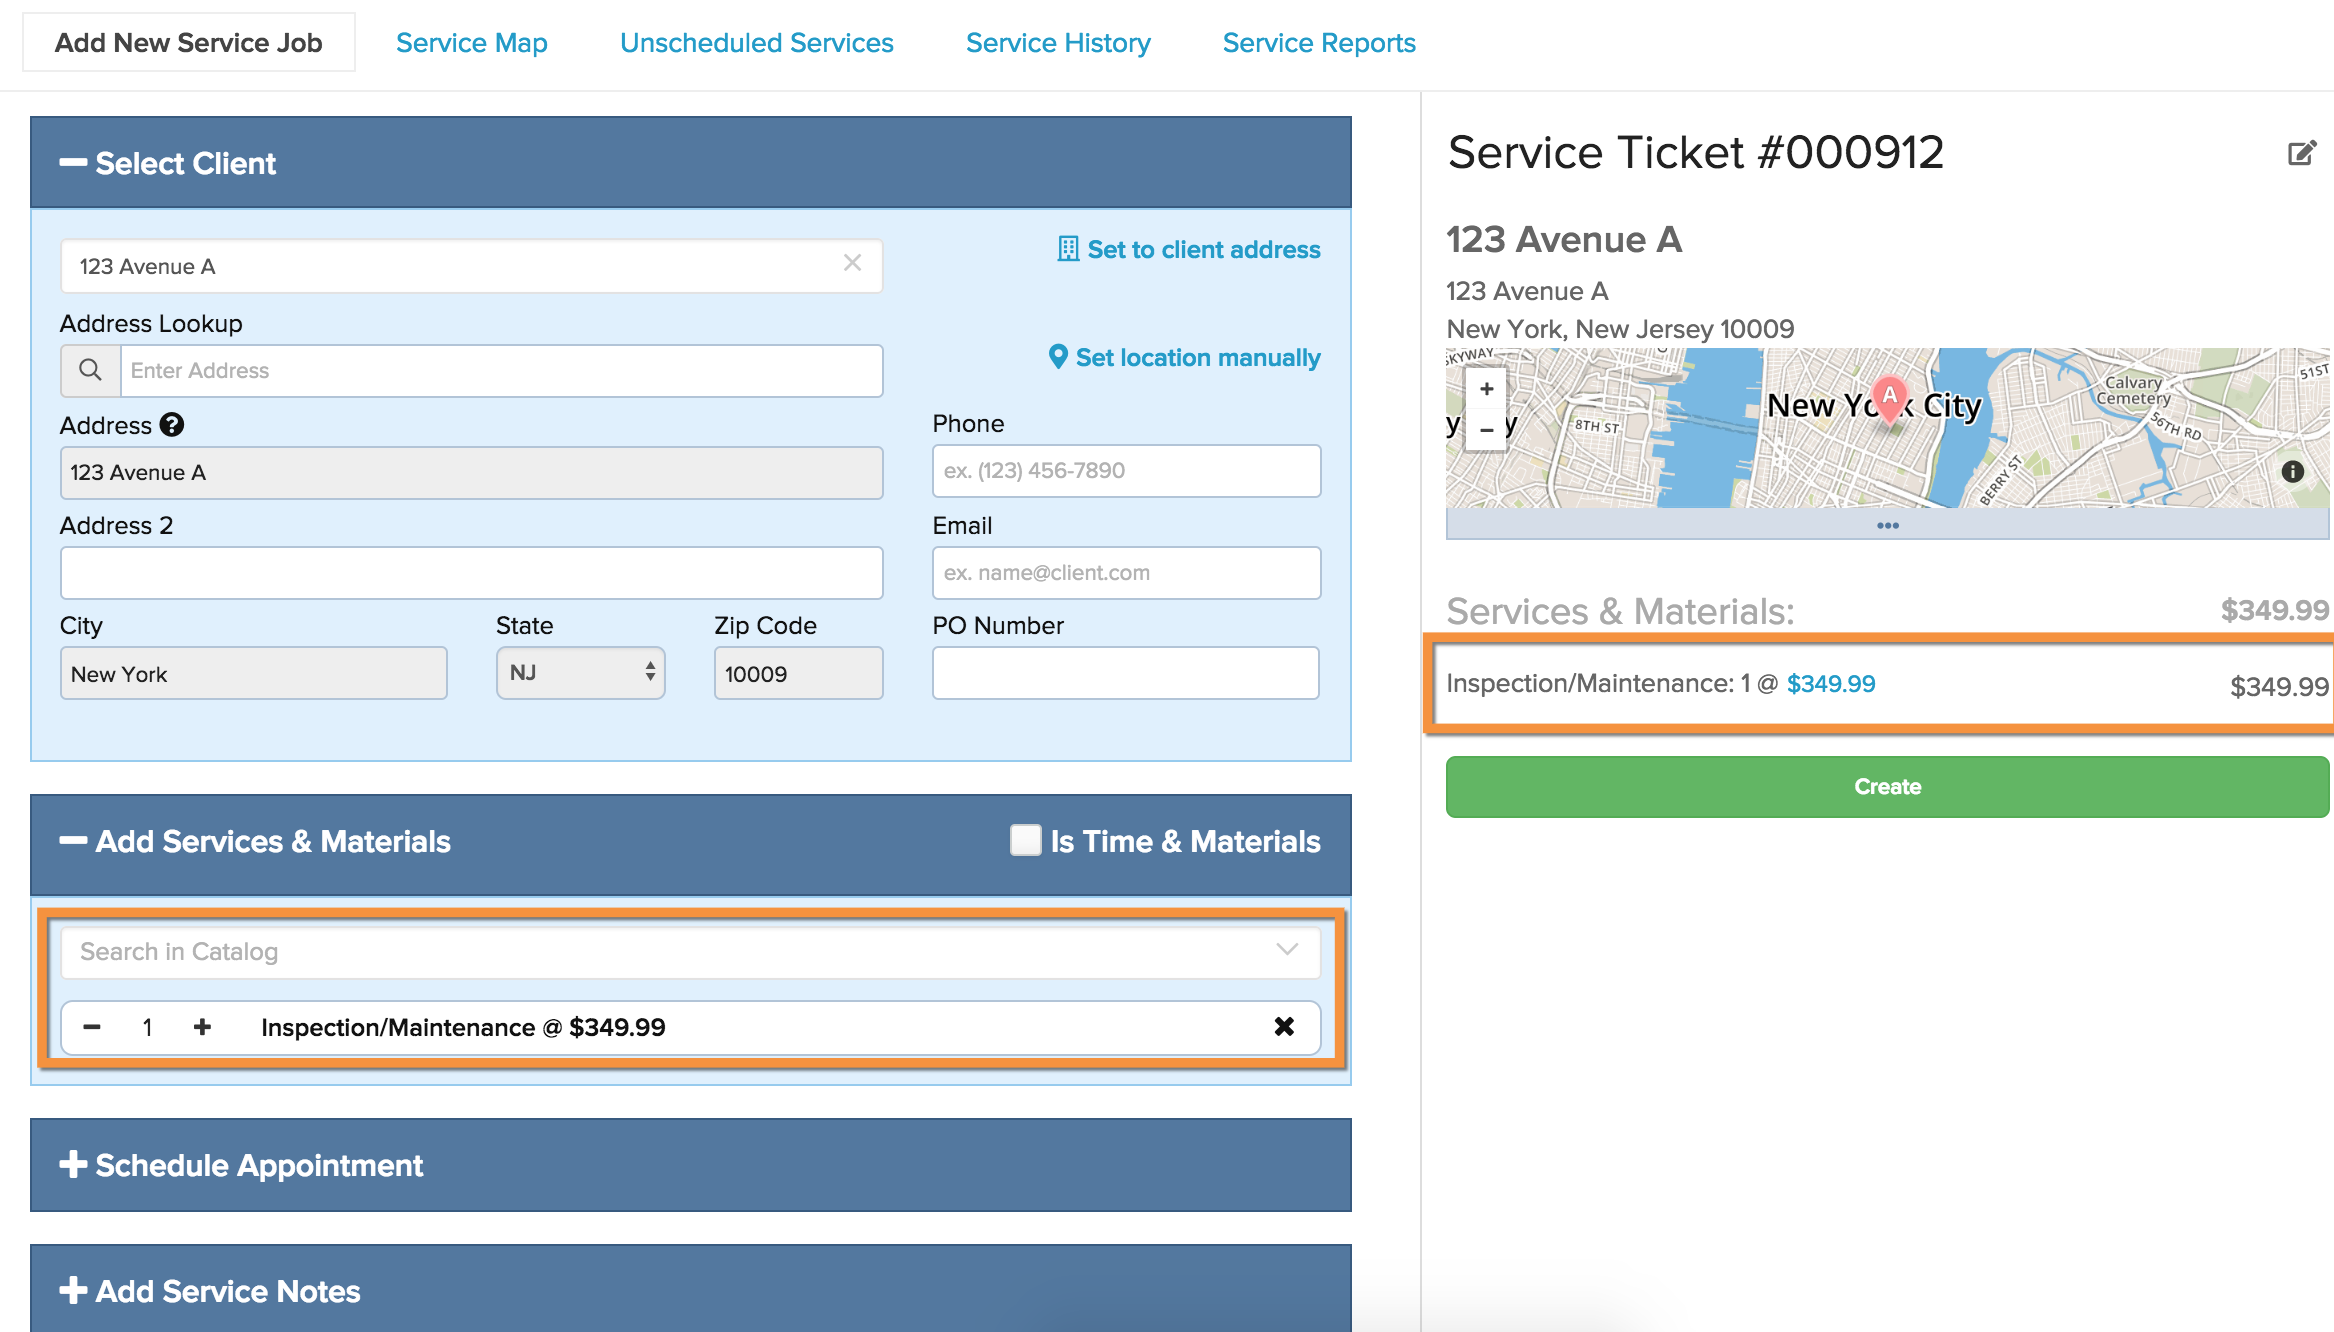 Screen-Shot-2018-01-15-at-3.55.20-PM How Do I Switch a Service Ticket from Pending to Scheduled?